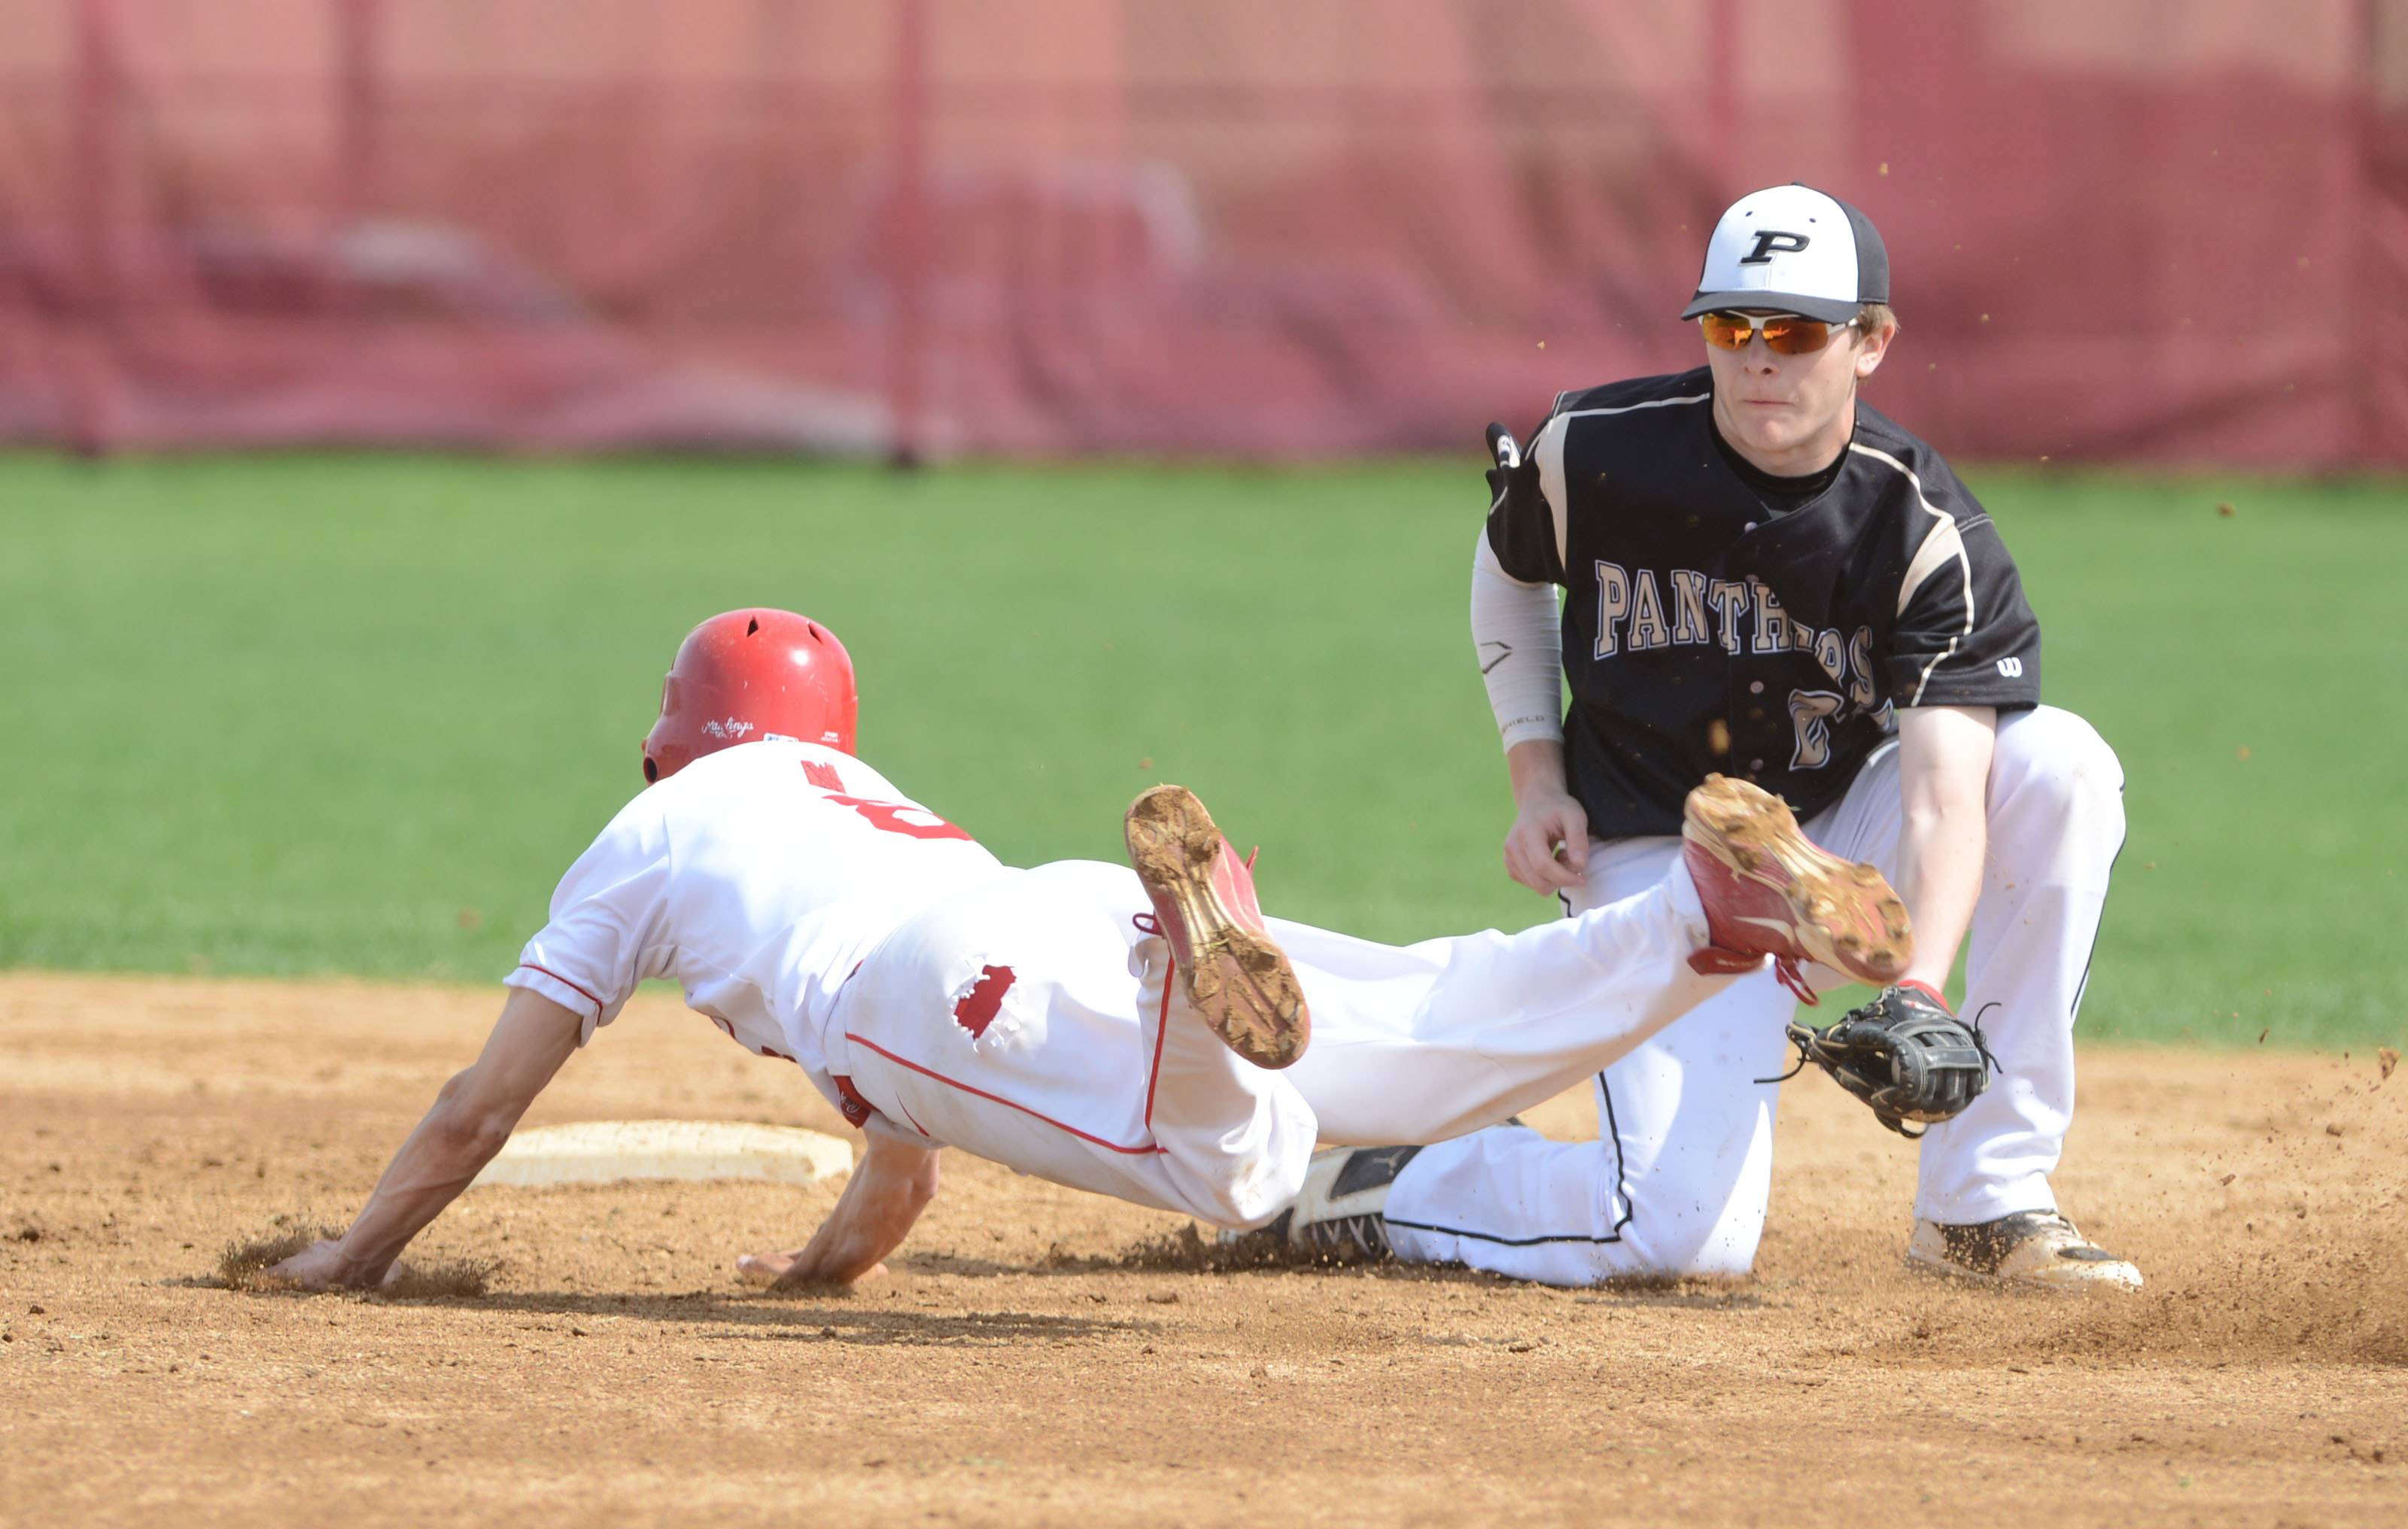 #8 Jason Wegner of Naperville Central dives into second while #24 Sam Ledbetter of Glnebard north puts the tag on him during the Glenbard North at Naperville Central baseball game Saturday. He was safe.